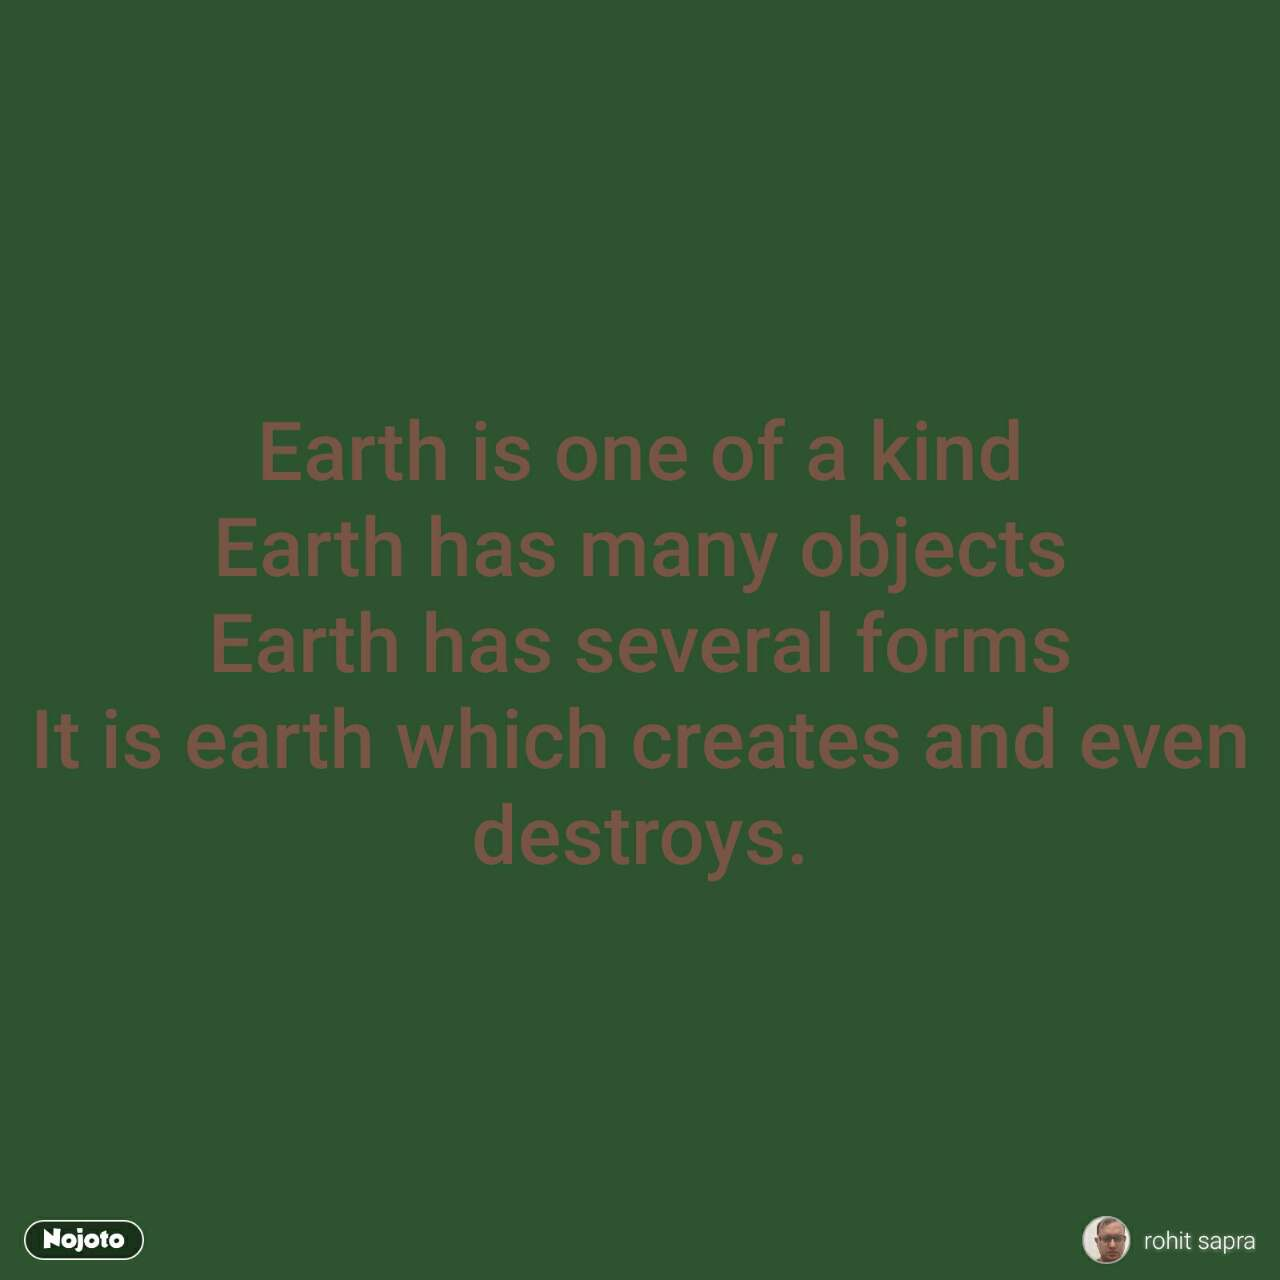 Earth is one of a kind Earth has many objects Earth has several forms It is earth which creates and even destroys.